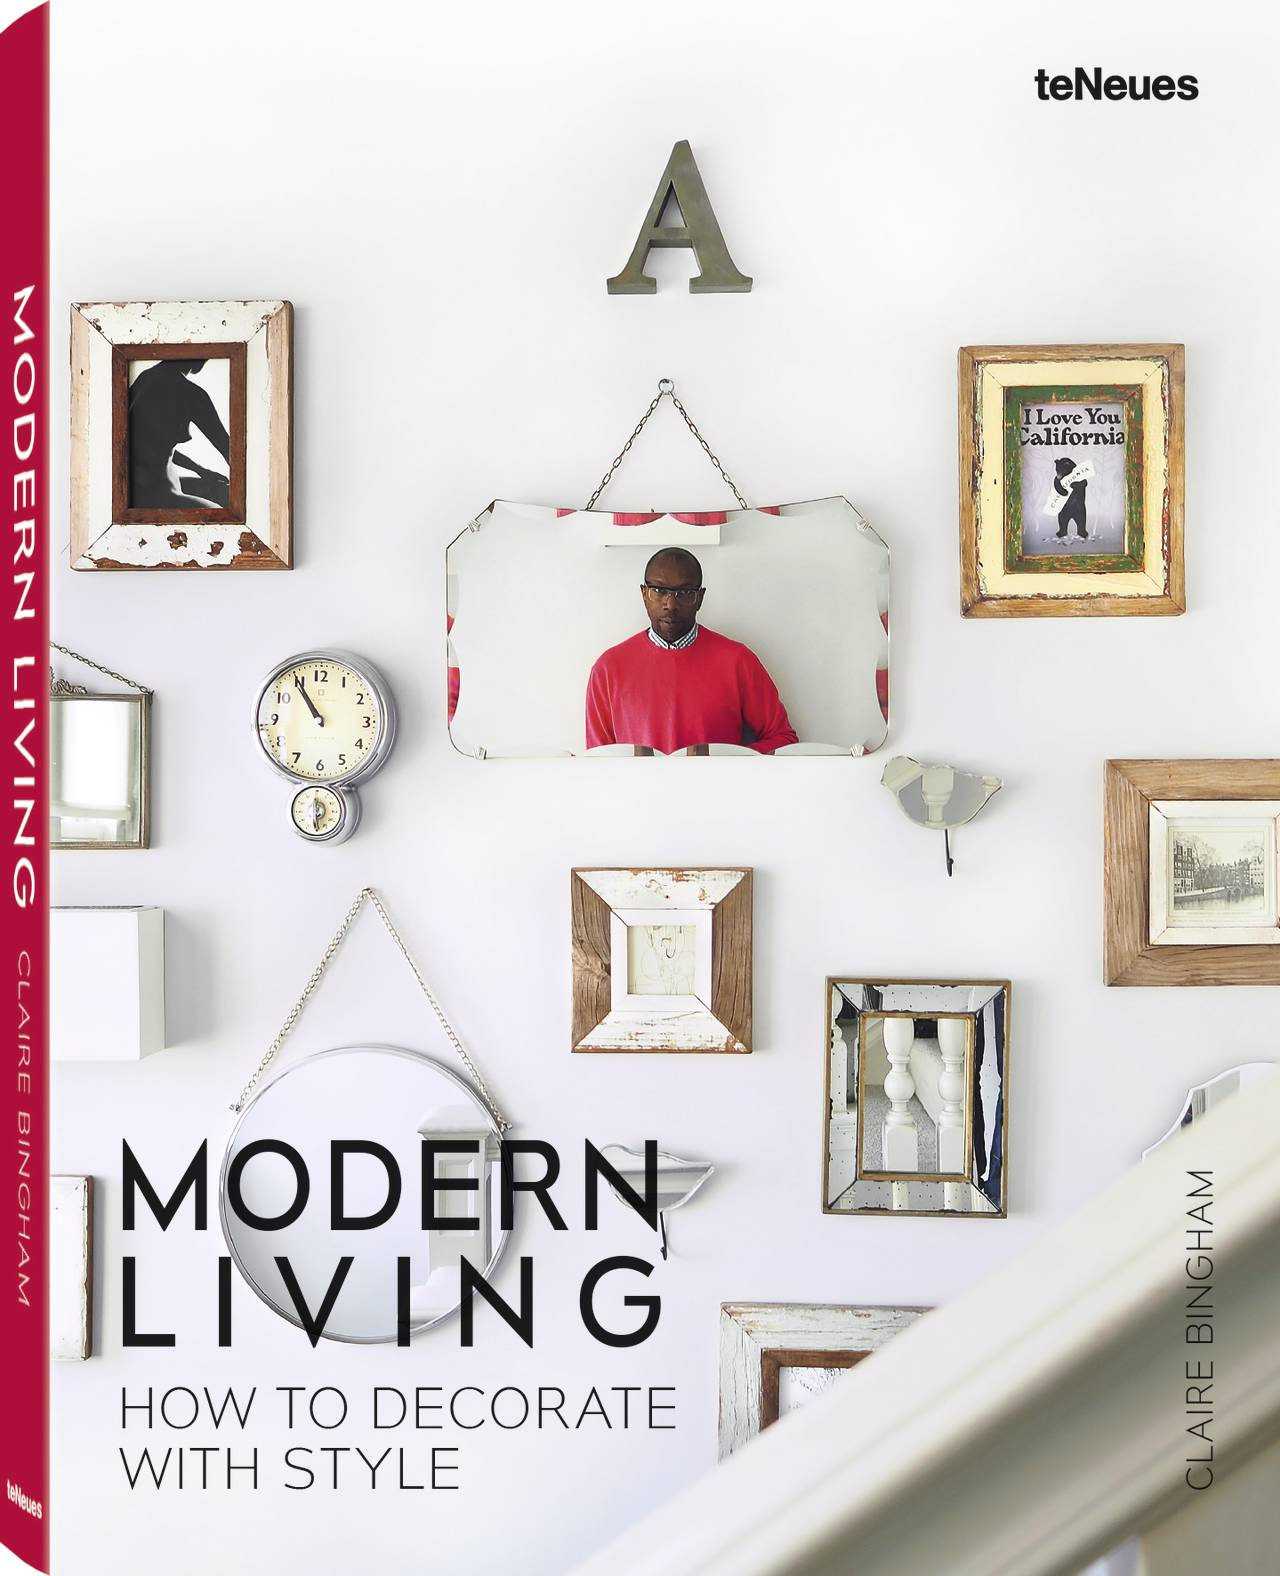 © Modern Living - How to Decorate With Style by Claire Bingham, published by teNeues, www.teneues.com, Photo © Fay Marko